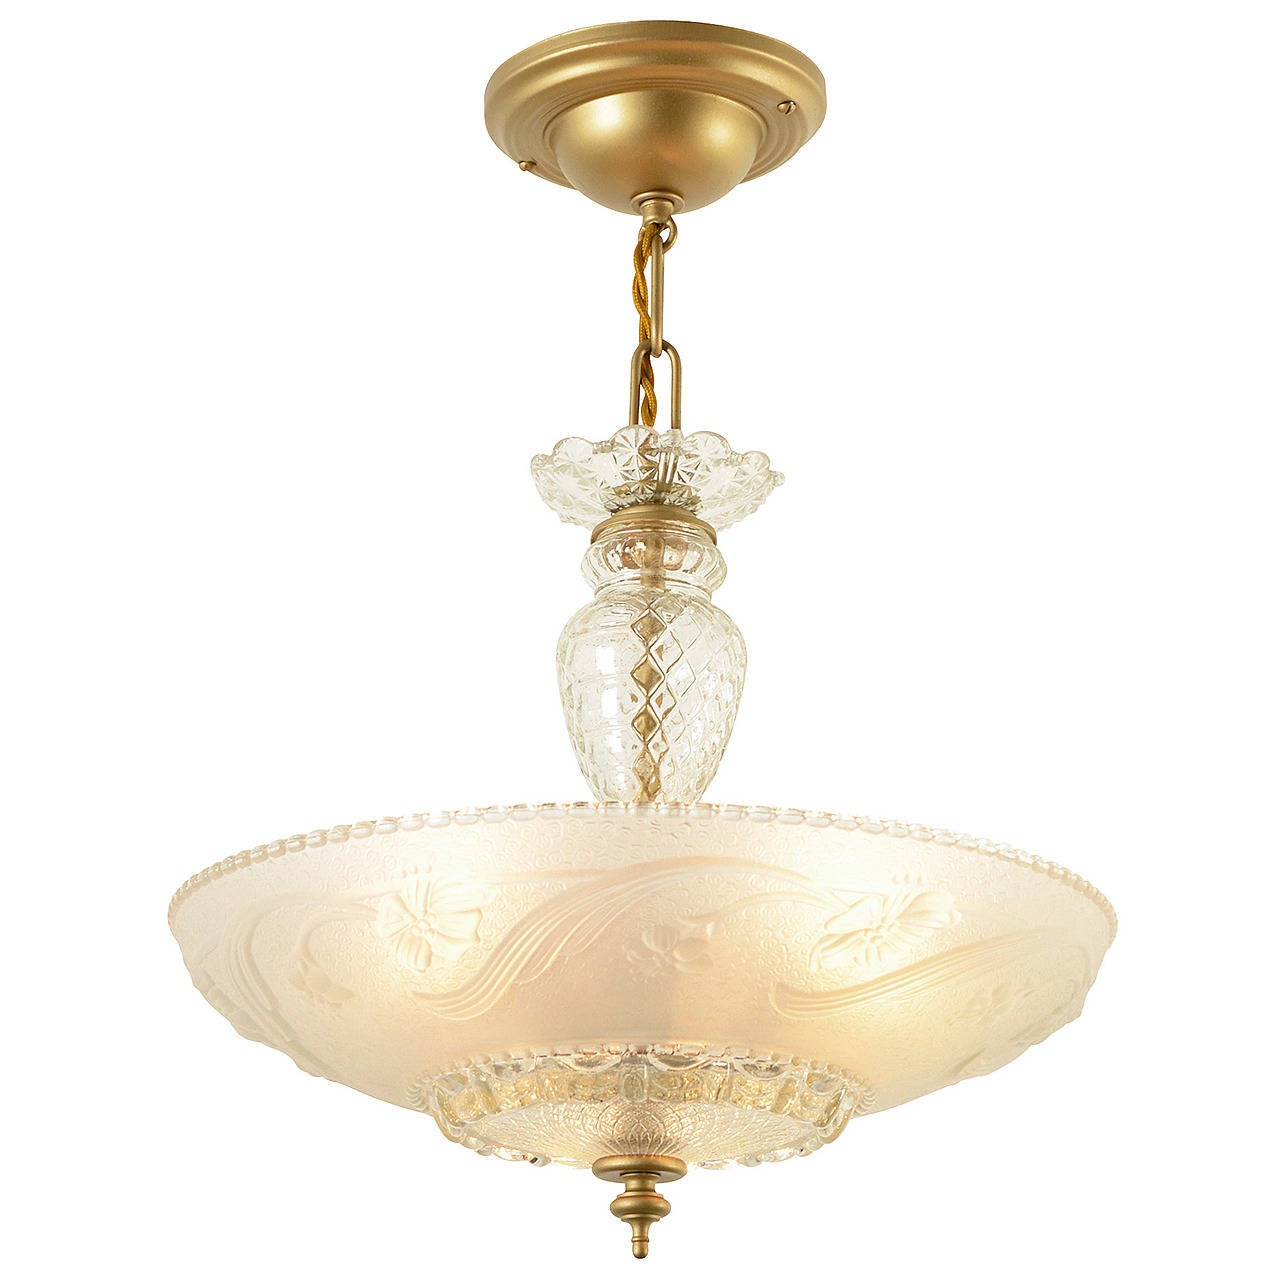 large glass bodied center post bowl chandelier circa 1940 at 1stdibs